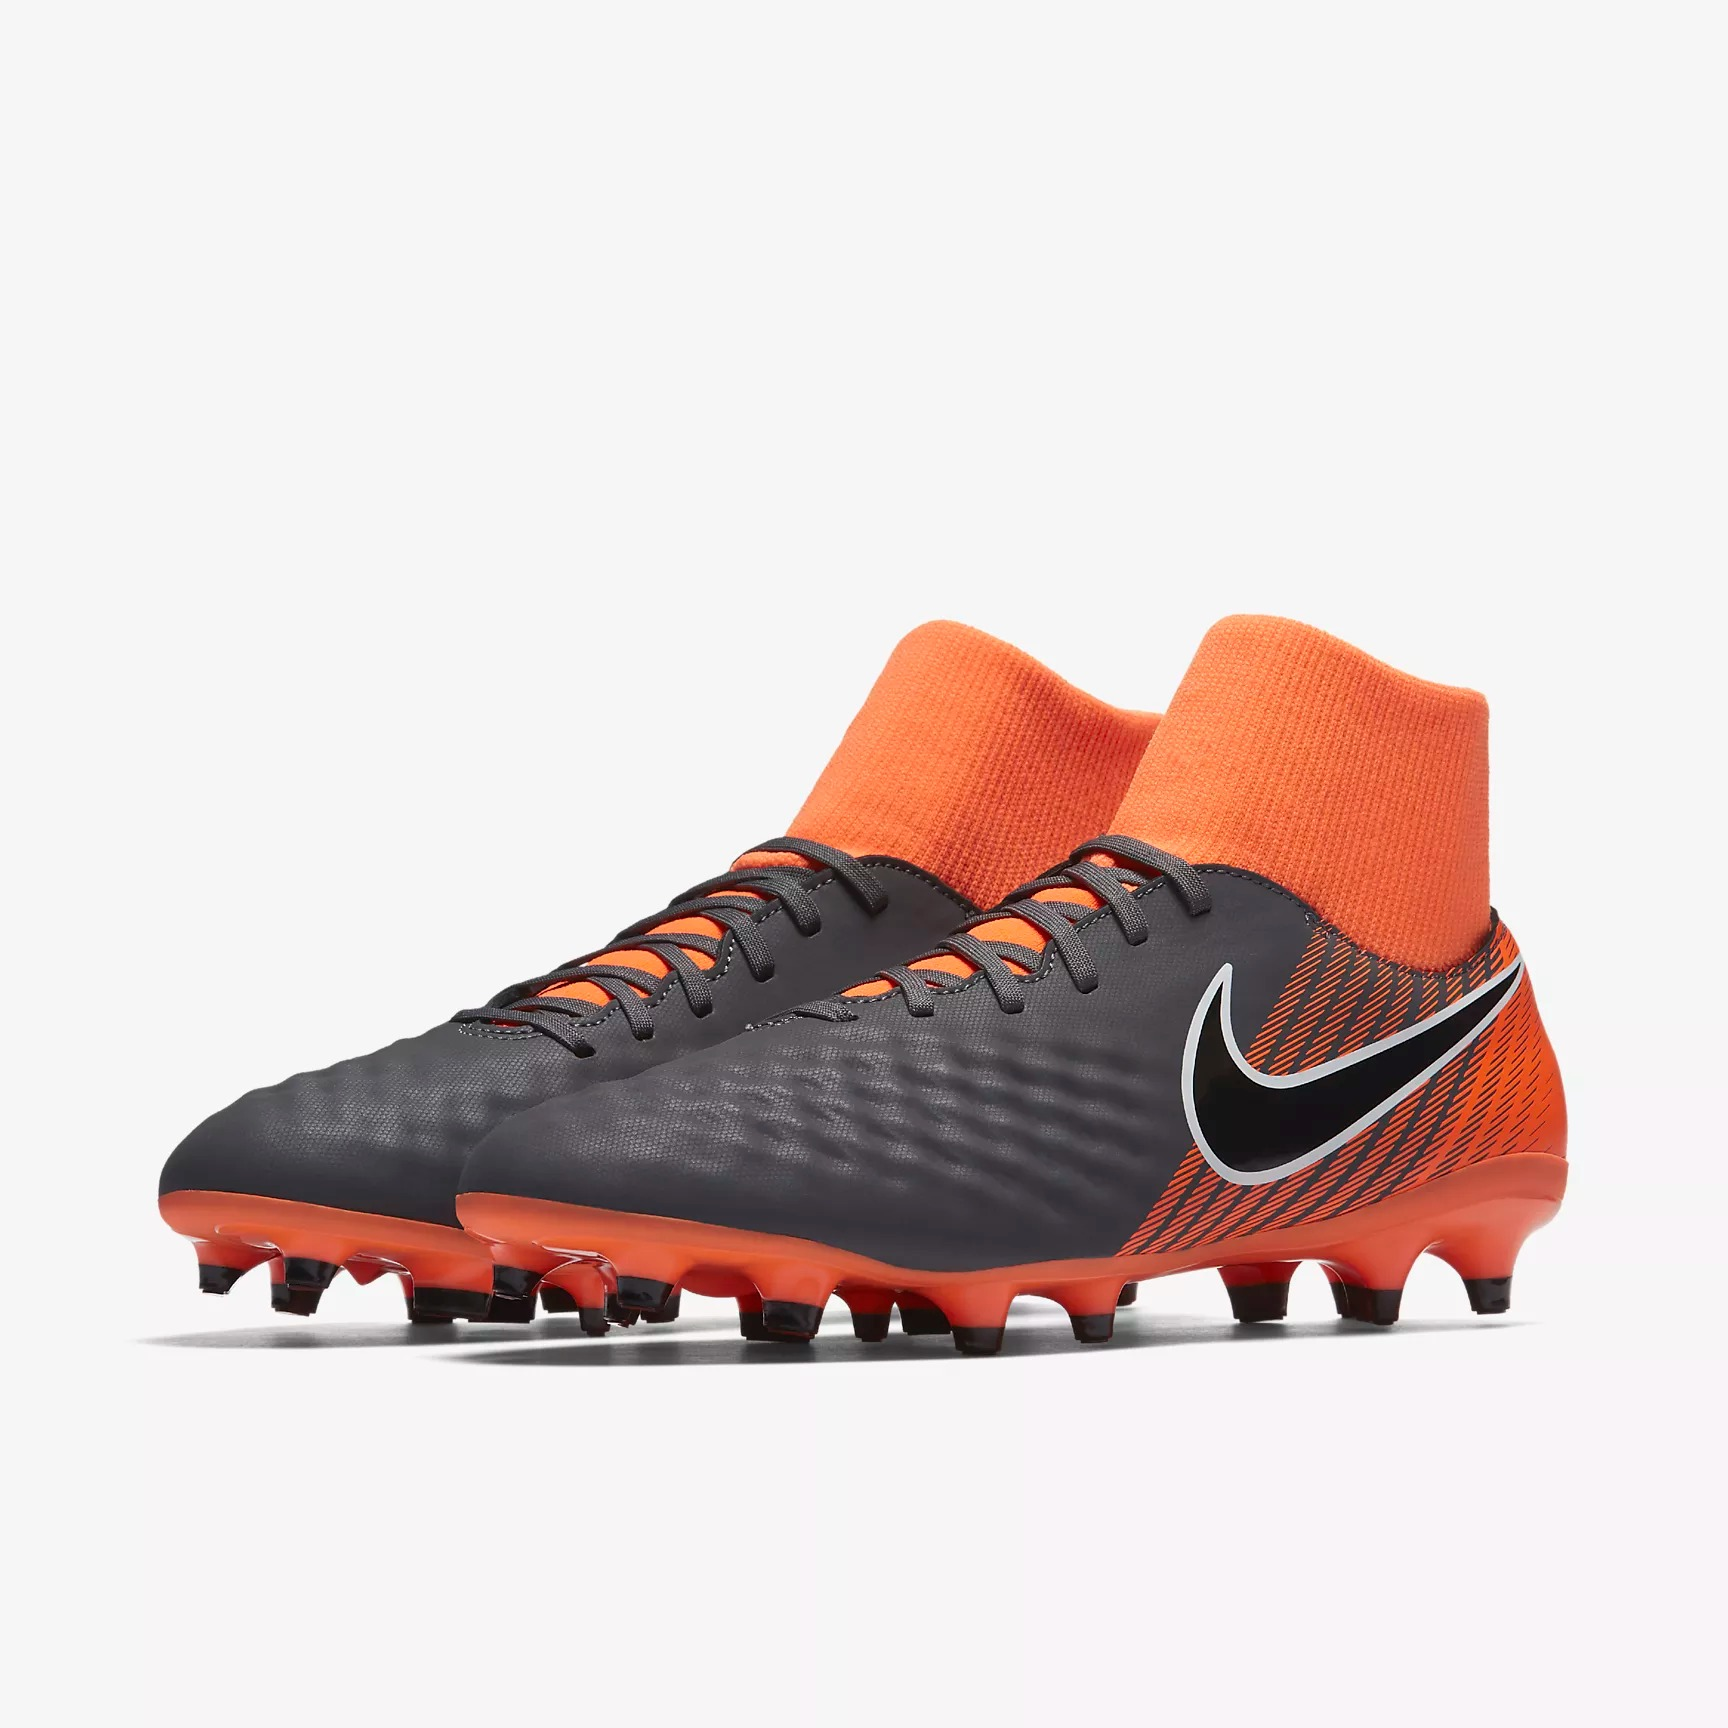 9b5b590de9ce Nike Magista Obra II Academy DF FG Soccer Cleats - Soccer Cleats Nike  Football Boots - Superfanas.lt